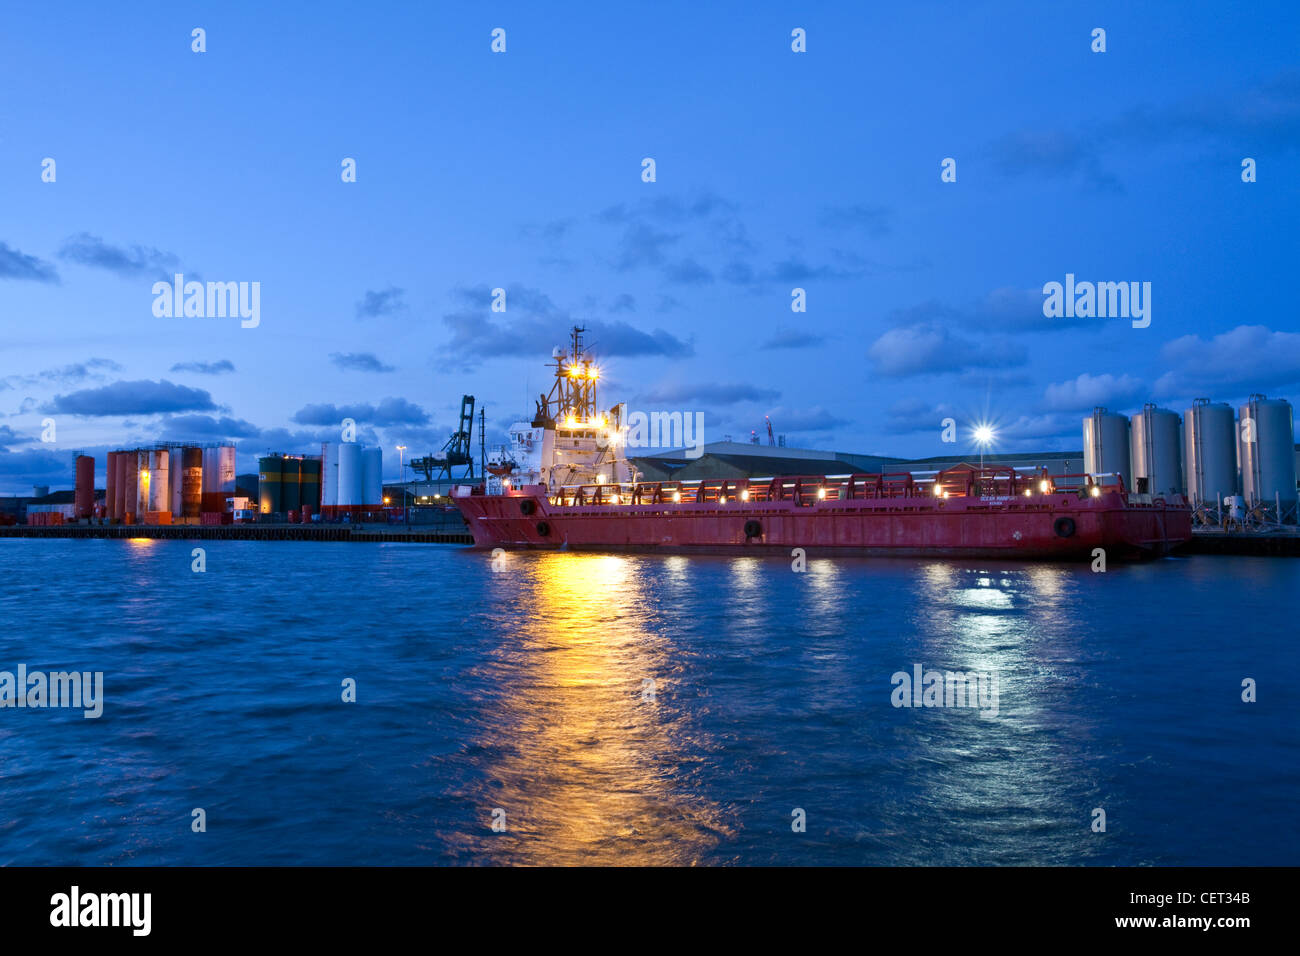 A cargo ship in the docks at Great Yarmouth. - Stock Image